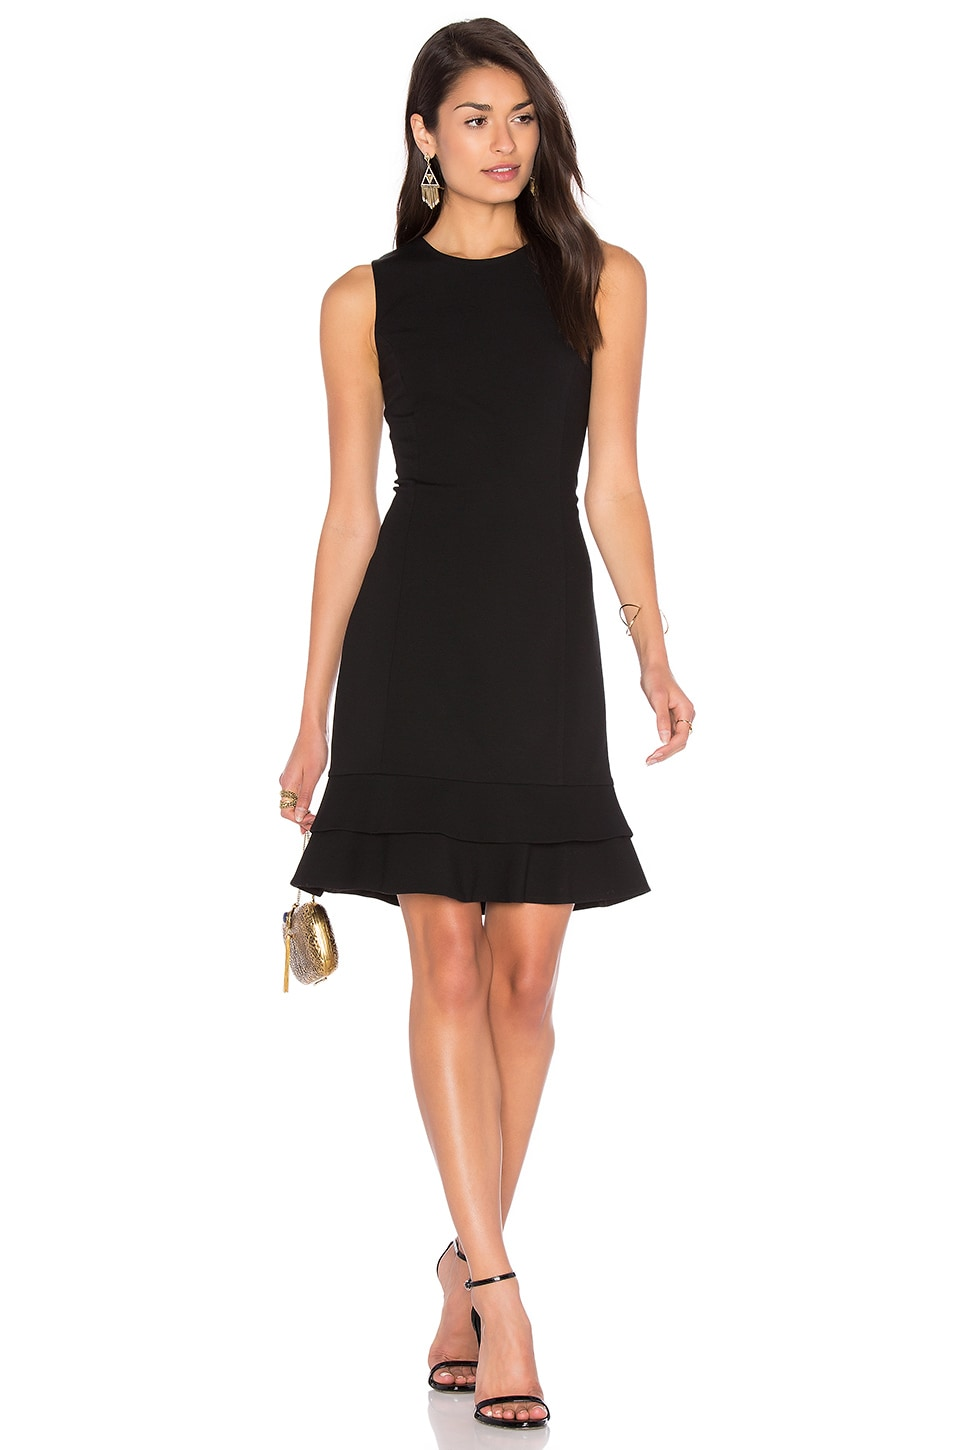 Jacey Dress by Diane von Furstenberg